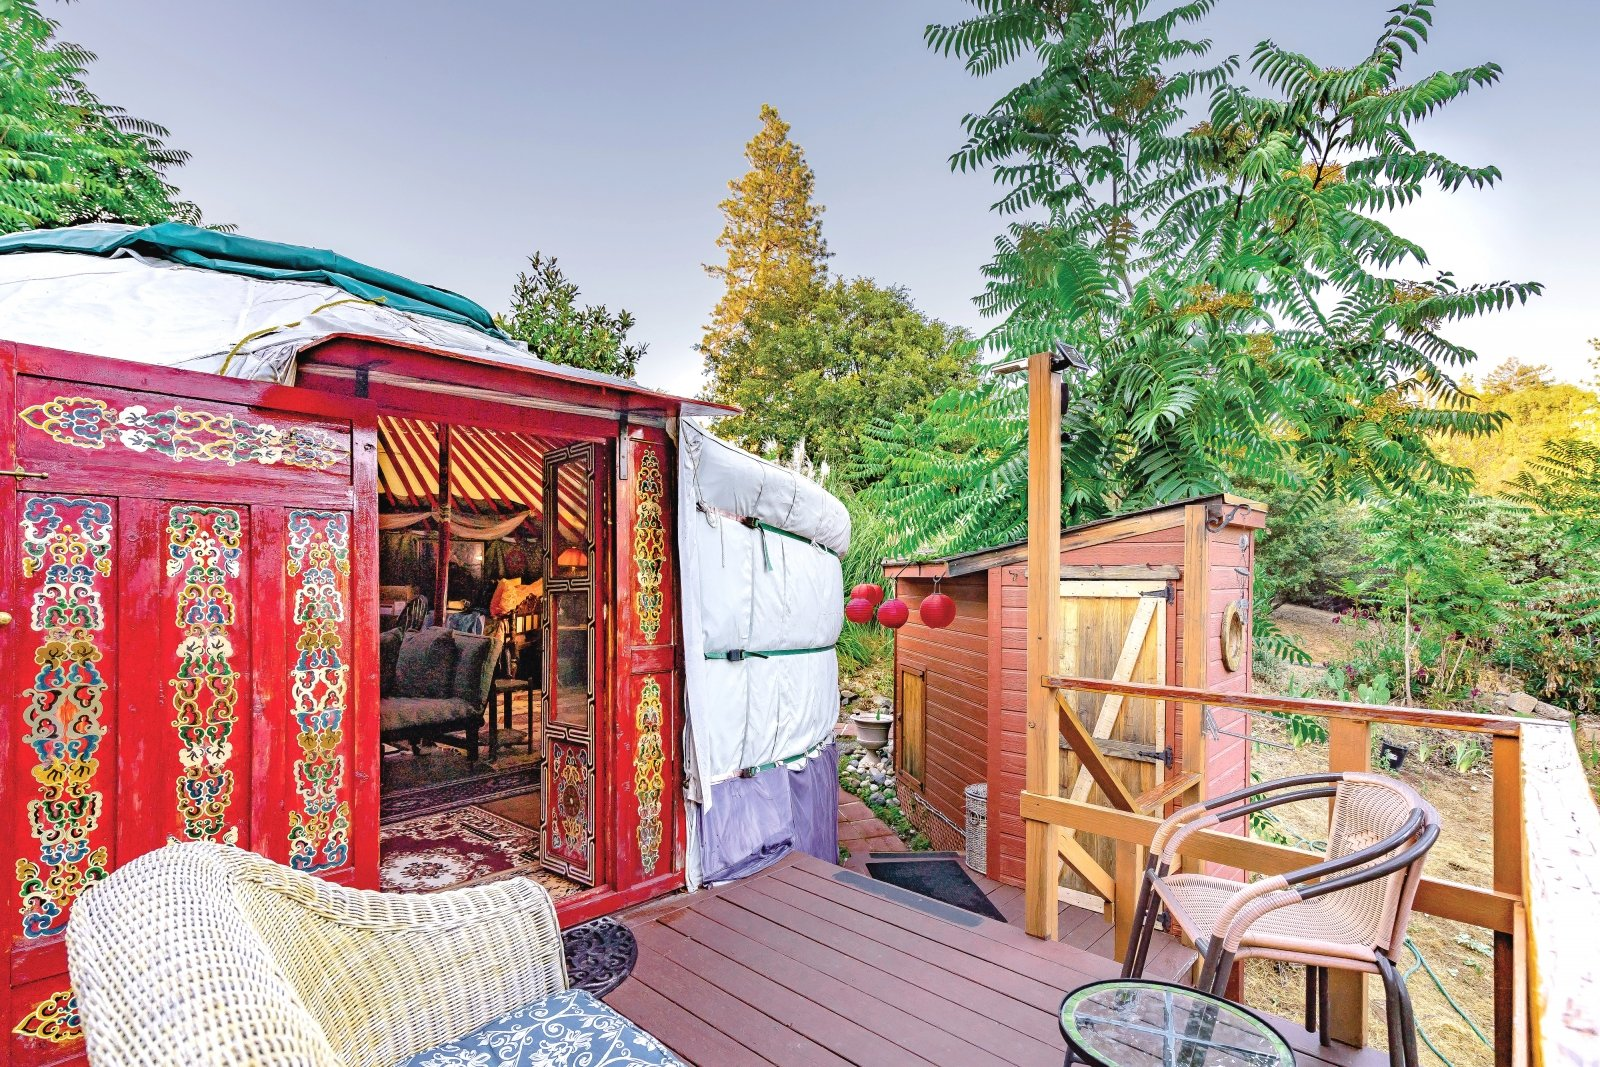 The red-wood-framed Mongolian yurt transports you to the other side of the Pacific Ocean. (Photos by Anna Wick)